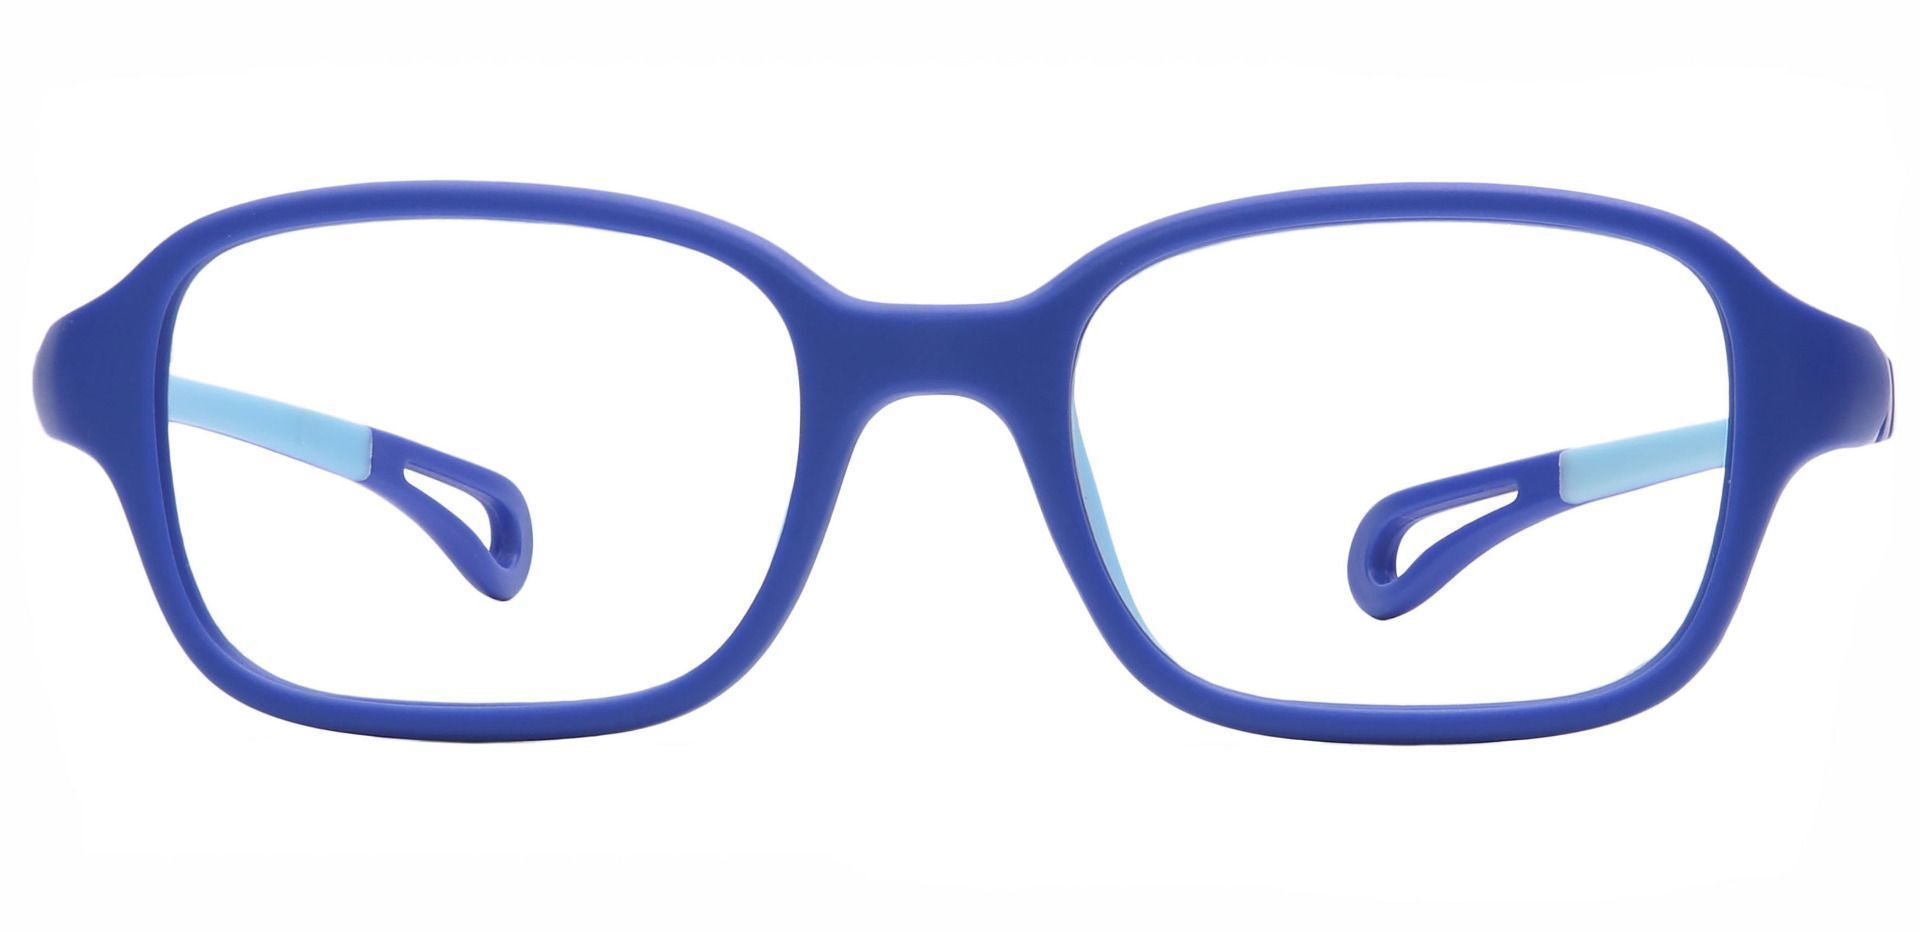 Quirk Oval Non-Rx Glasses - Blue